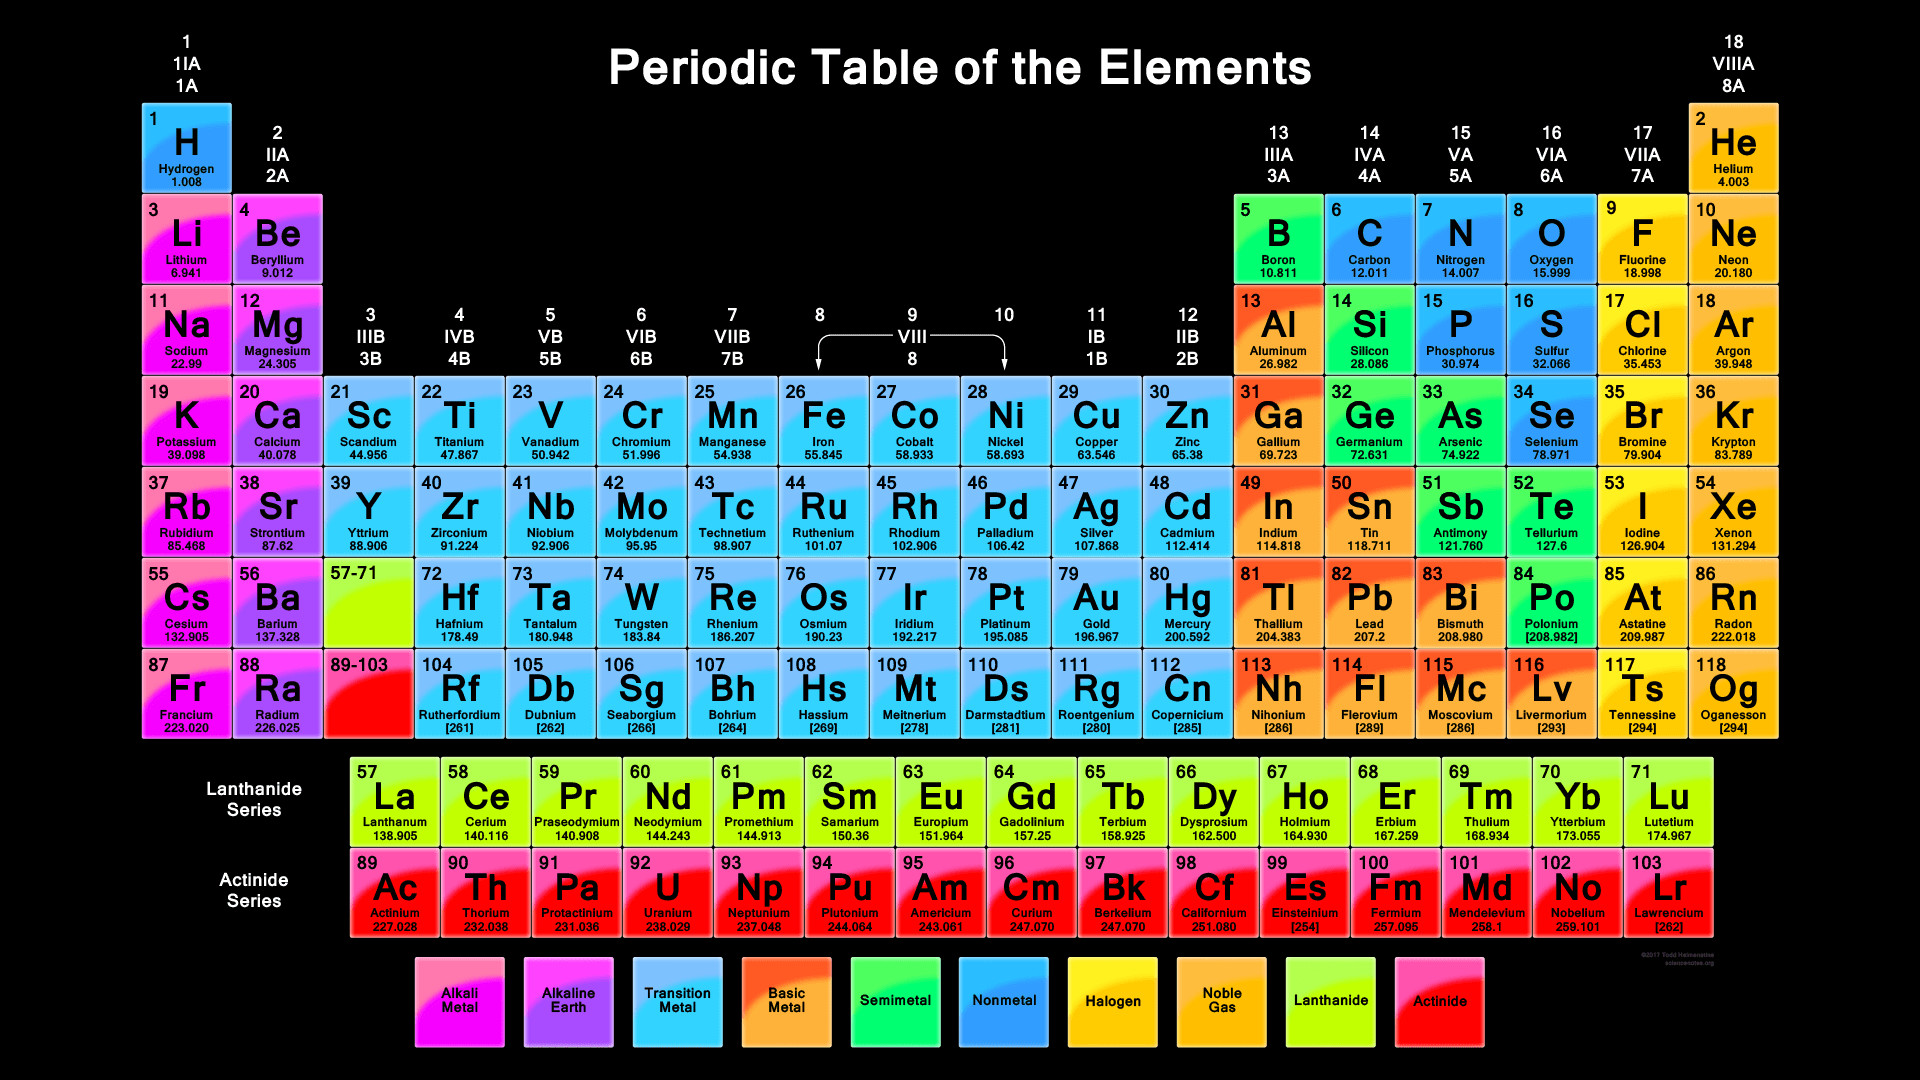 1920x1080 this hd wallpaper of periodic table contains each elements number symbol name